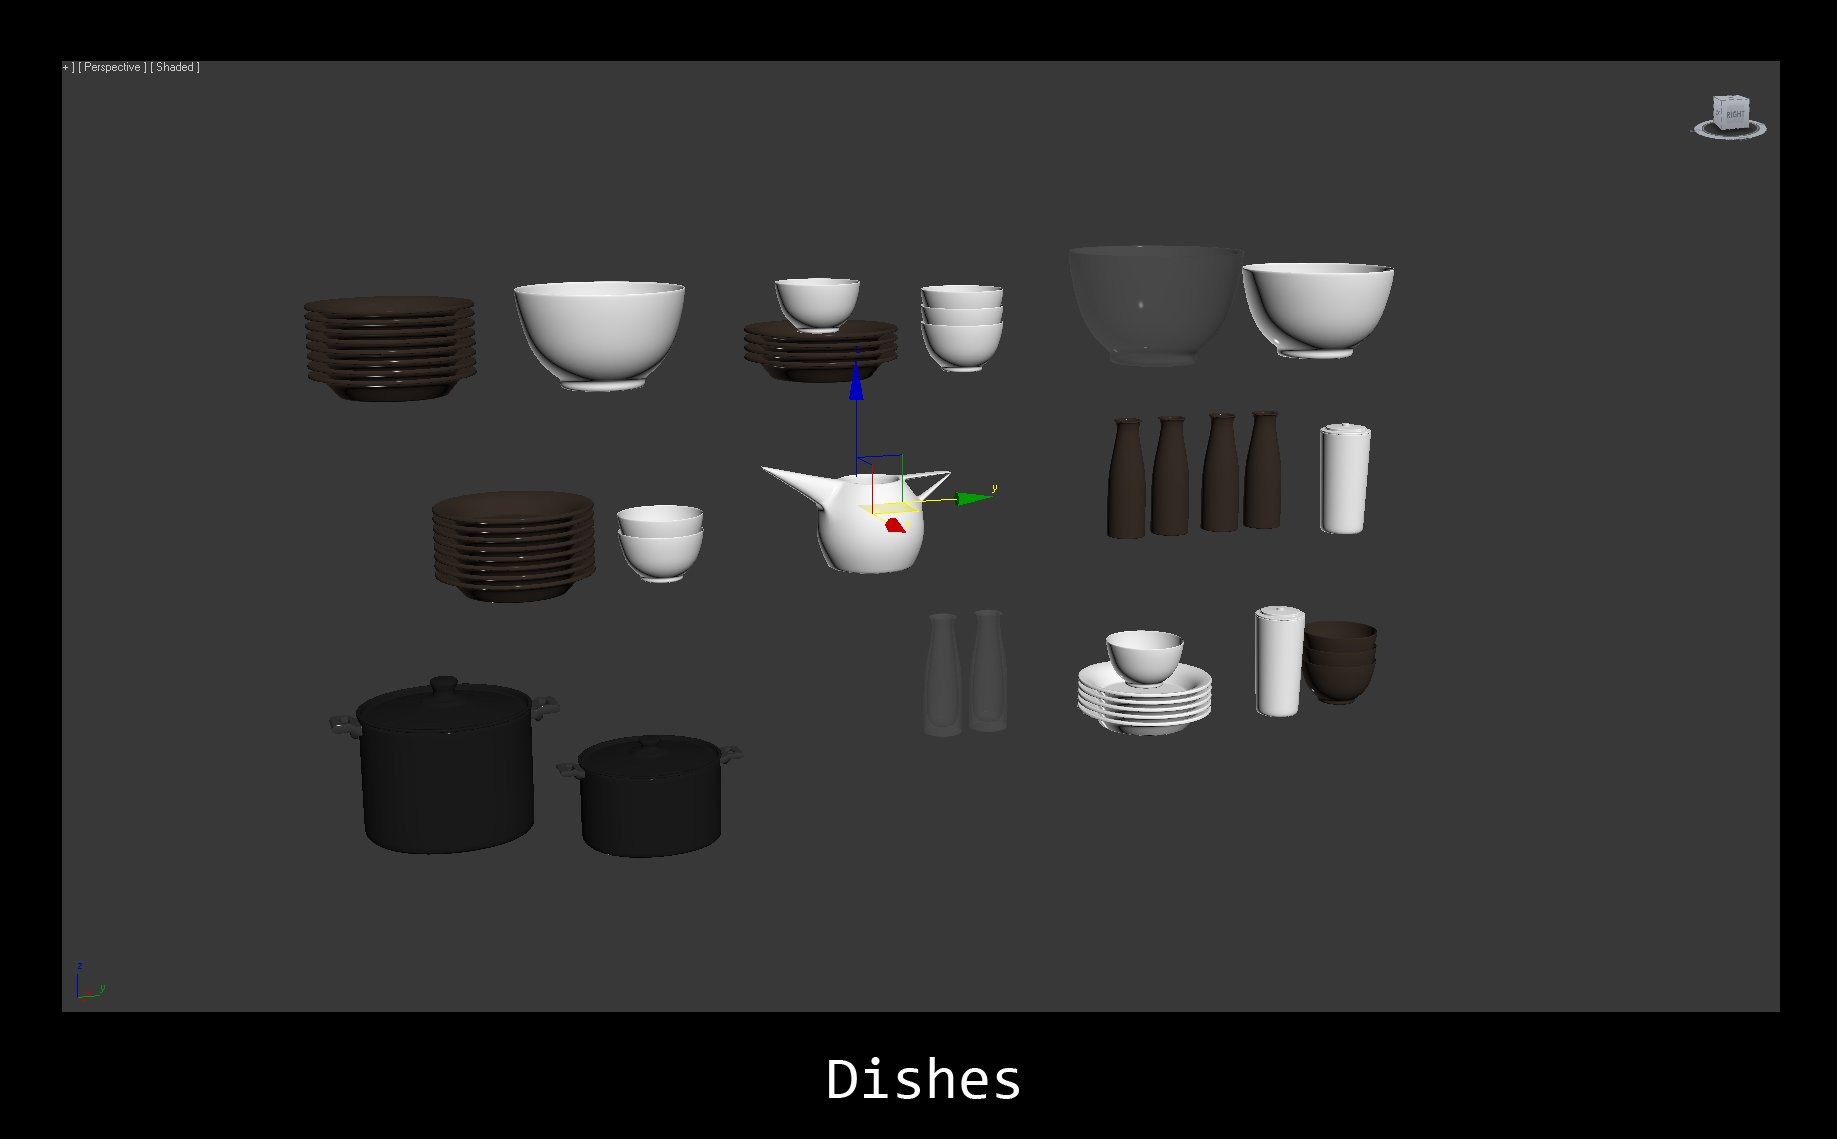 06_Dishes_evermotion.jpg